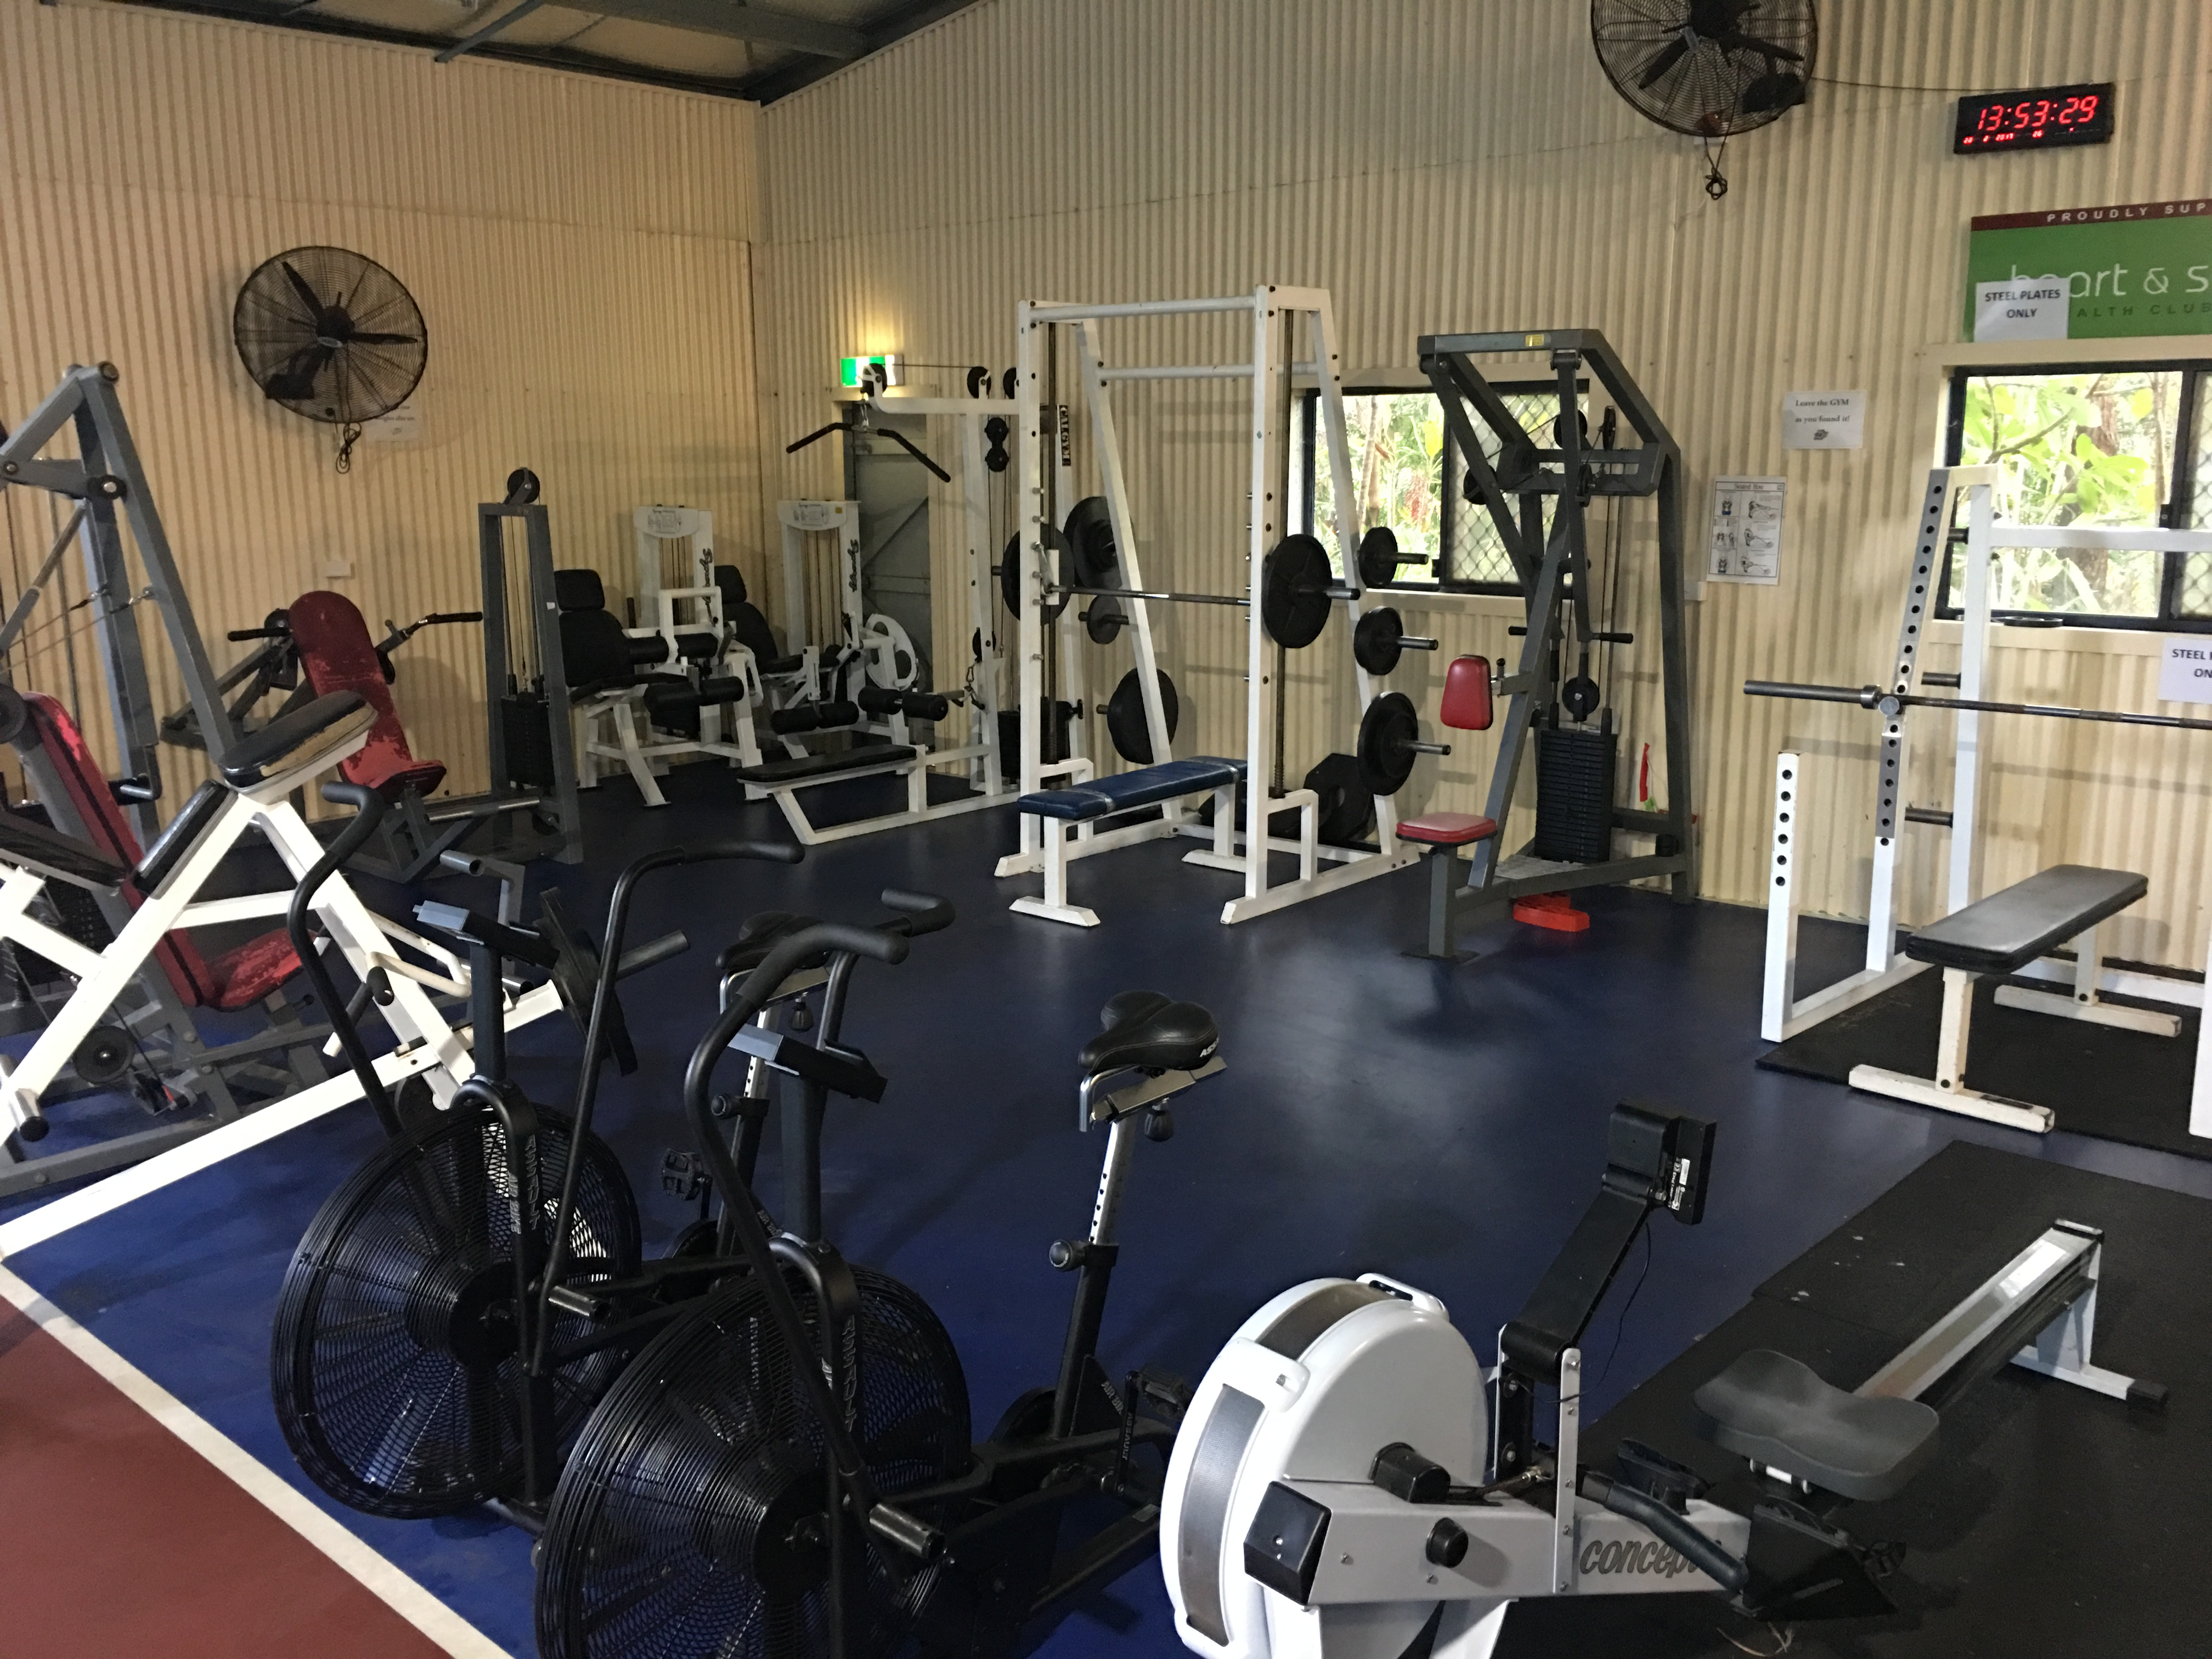 School Gym - Resistance Training Area 2